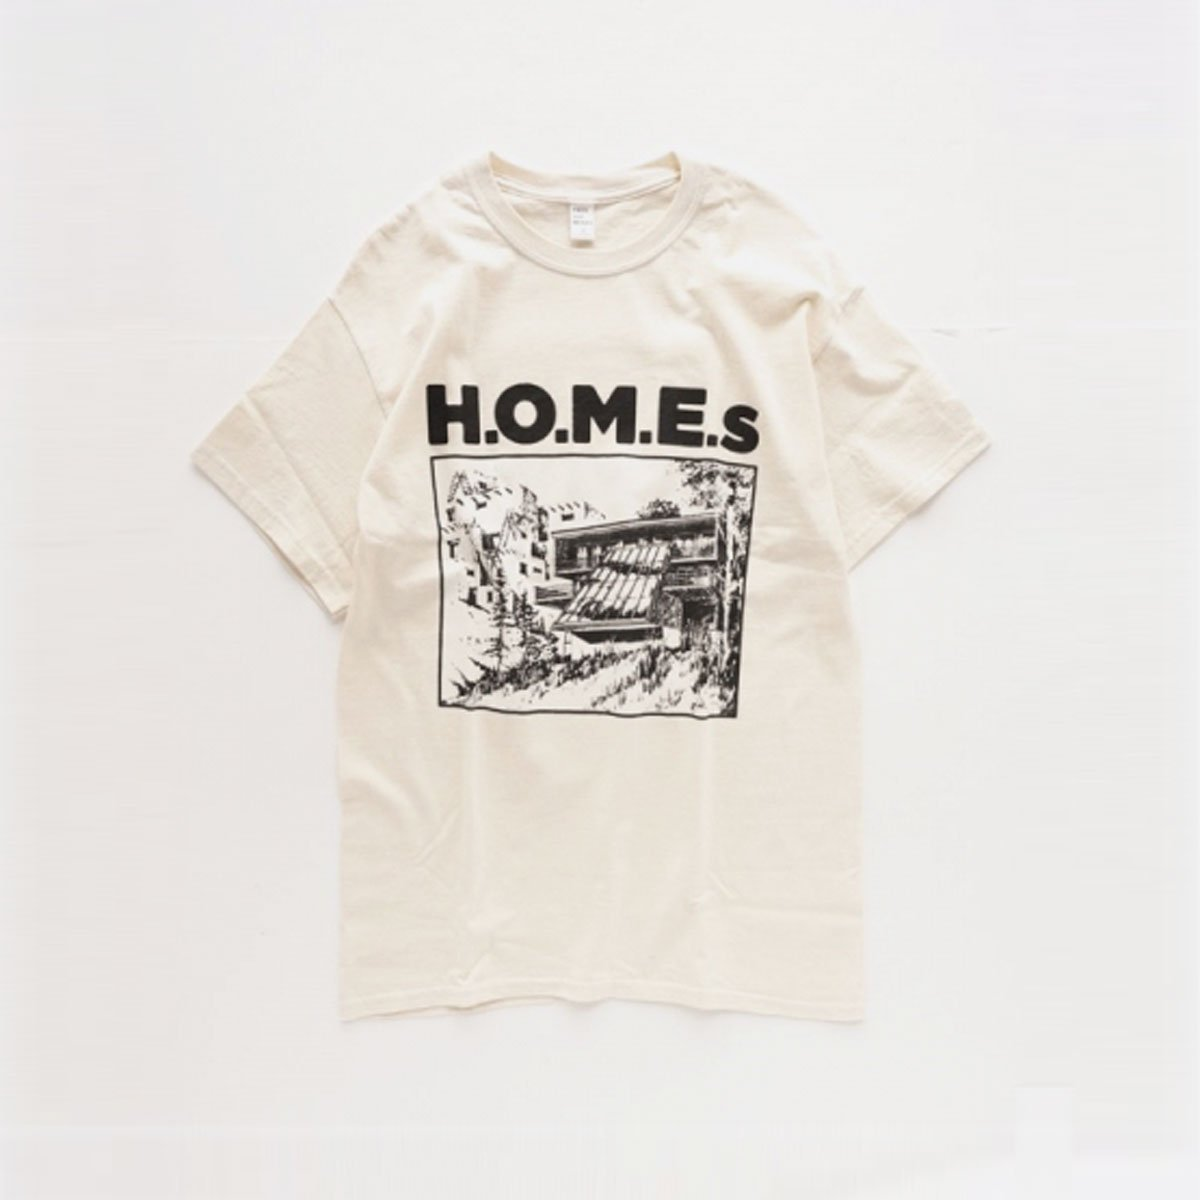 ENDS & MEANS H.O.M.E. S TEE  (NATURAL)